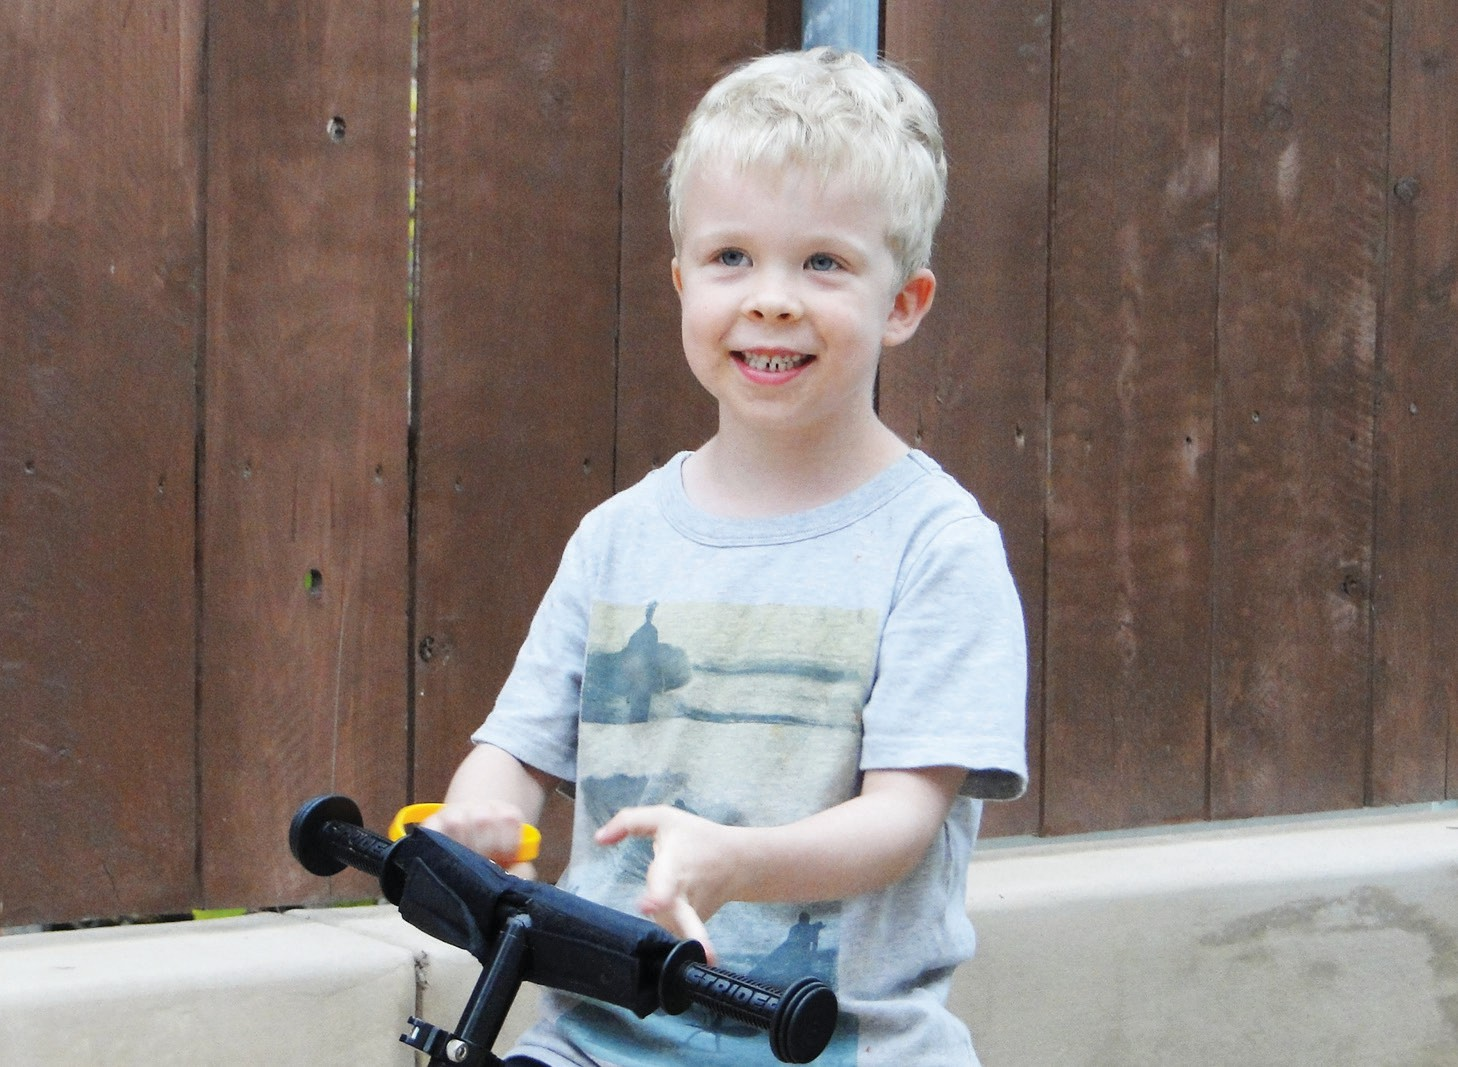 Ryan Morrow is a normal-looking little boy who has Duchenne Muscular Dystrophy, which threatens to limit his life.